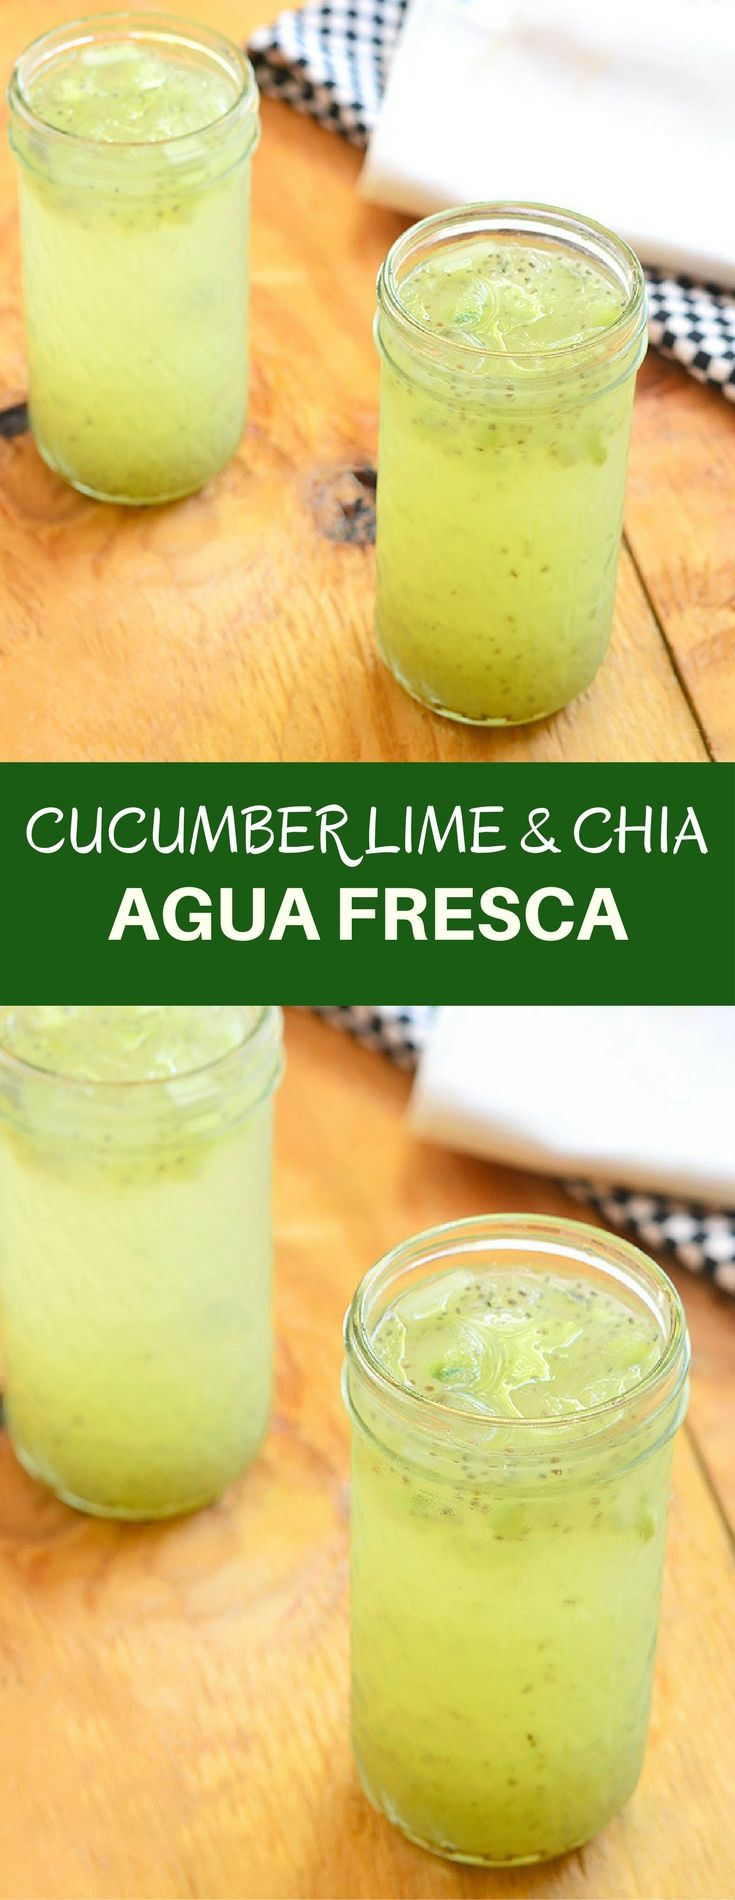 Cucumber Lime and Chia Fresca is a refreshing drink you'd want all summer long. With fresh cucumbers, freshly-squeezed lime juice, and superfood chia, this aqua fresca is a healthy and delicious way to hydrate! via @lalainespins